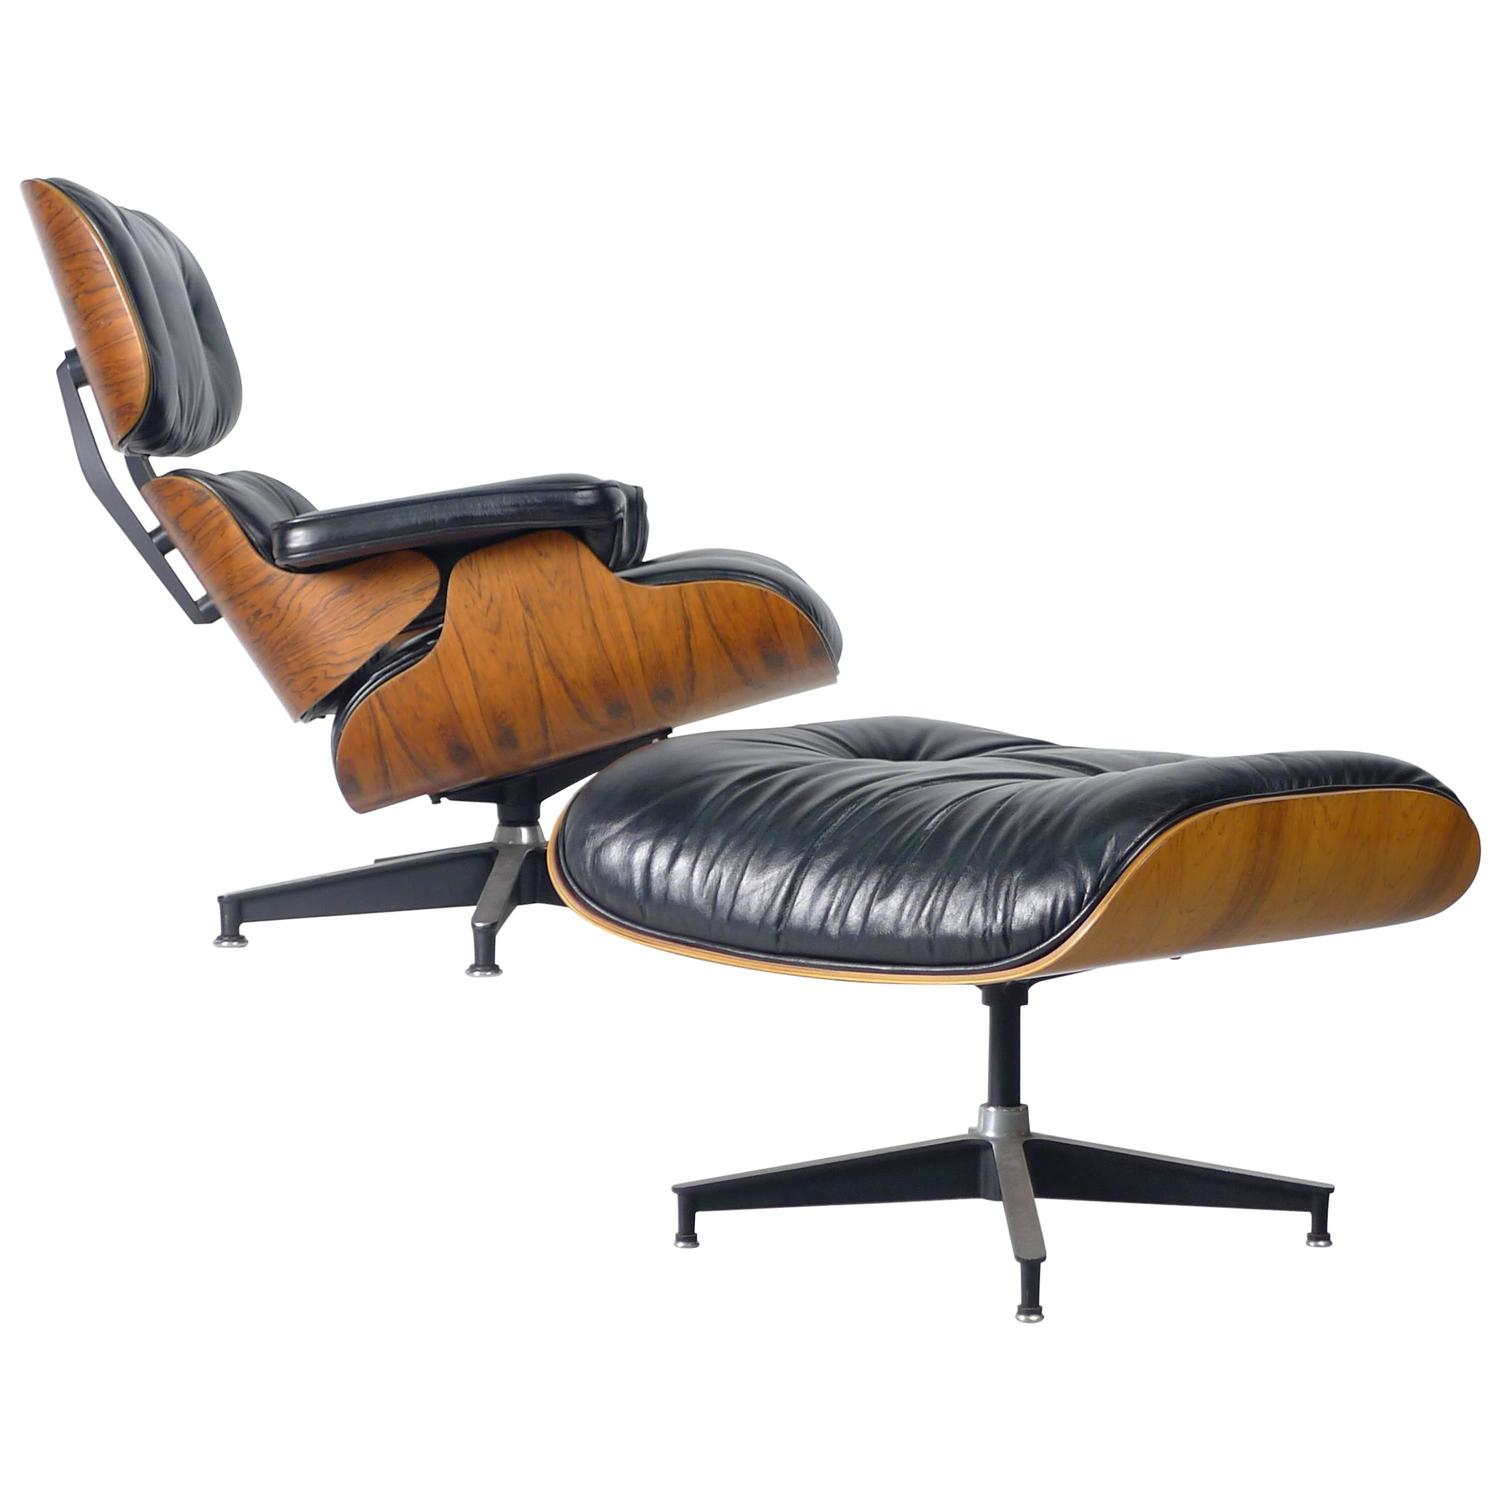 Eames Lounge Chair And Ottoman At 1stdibs